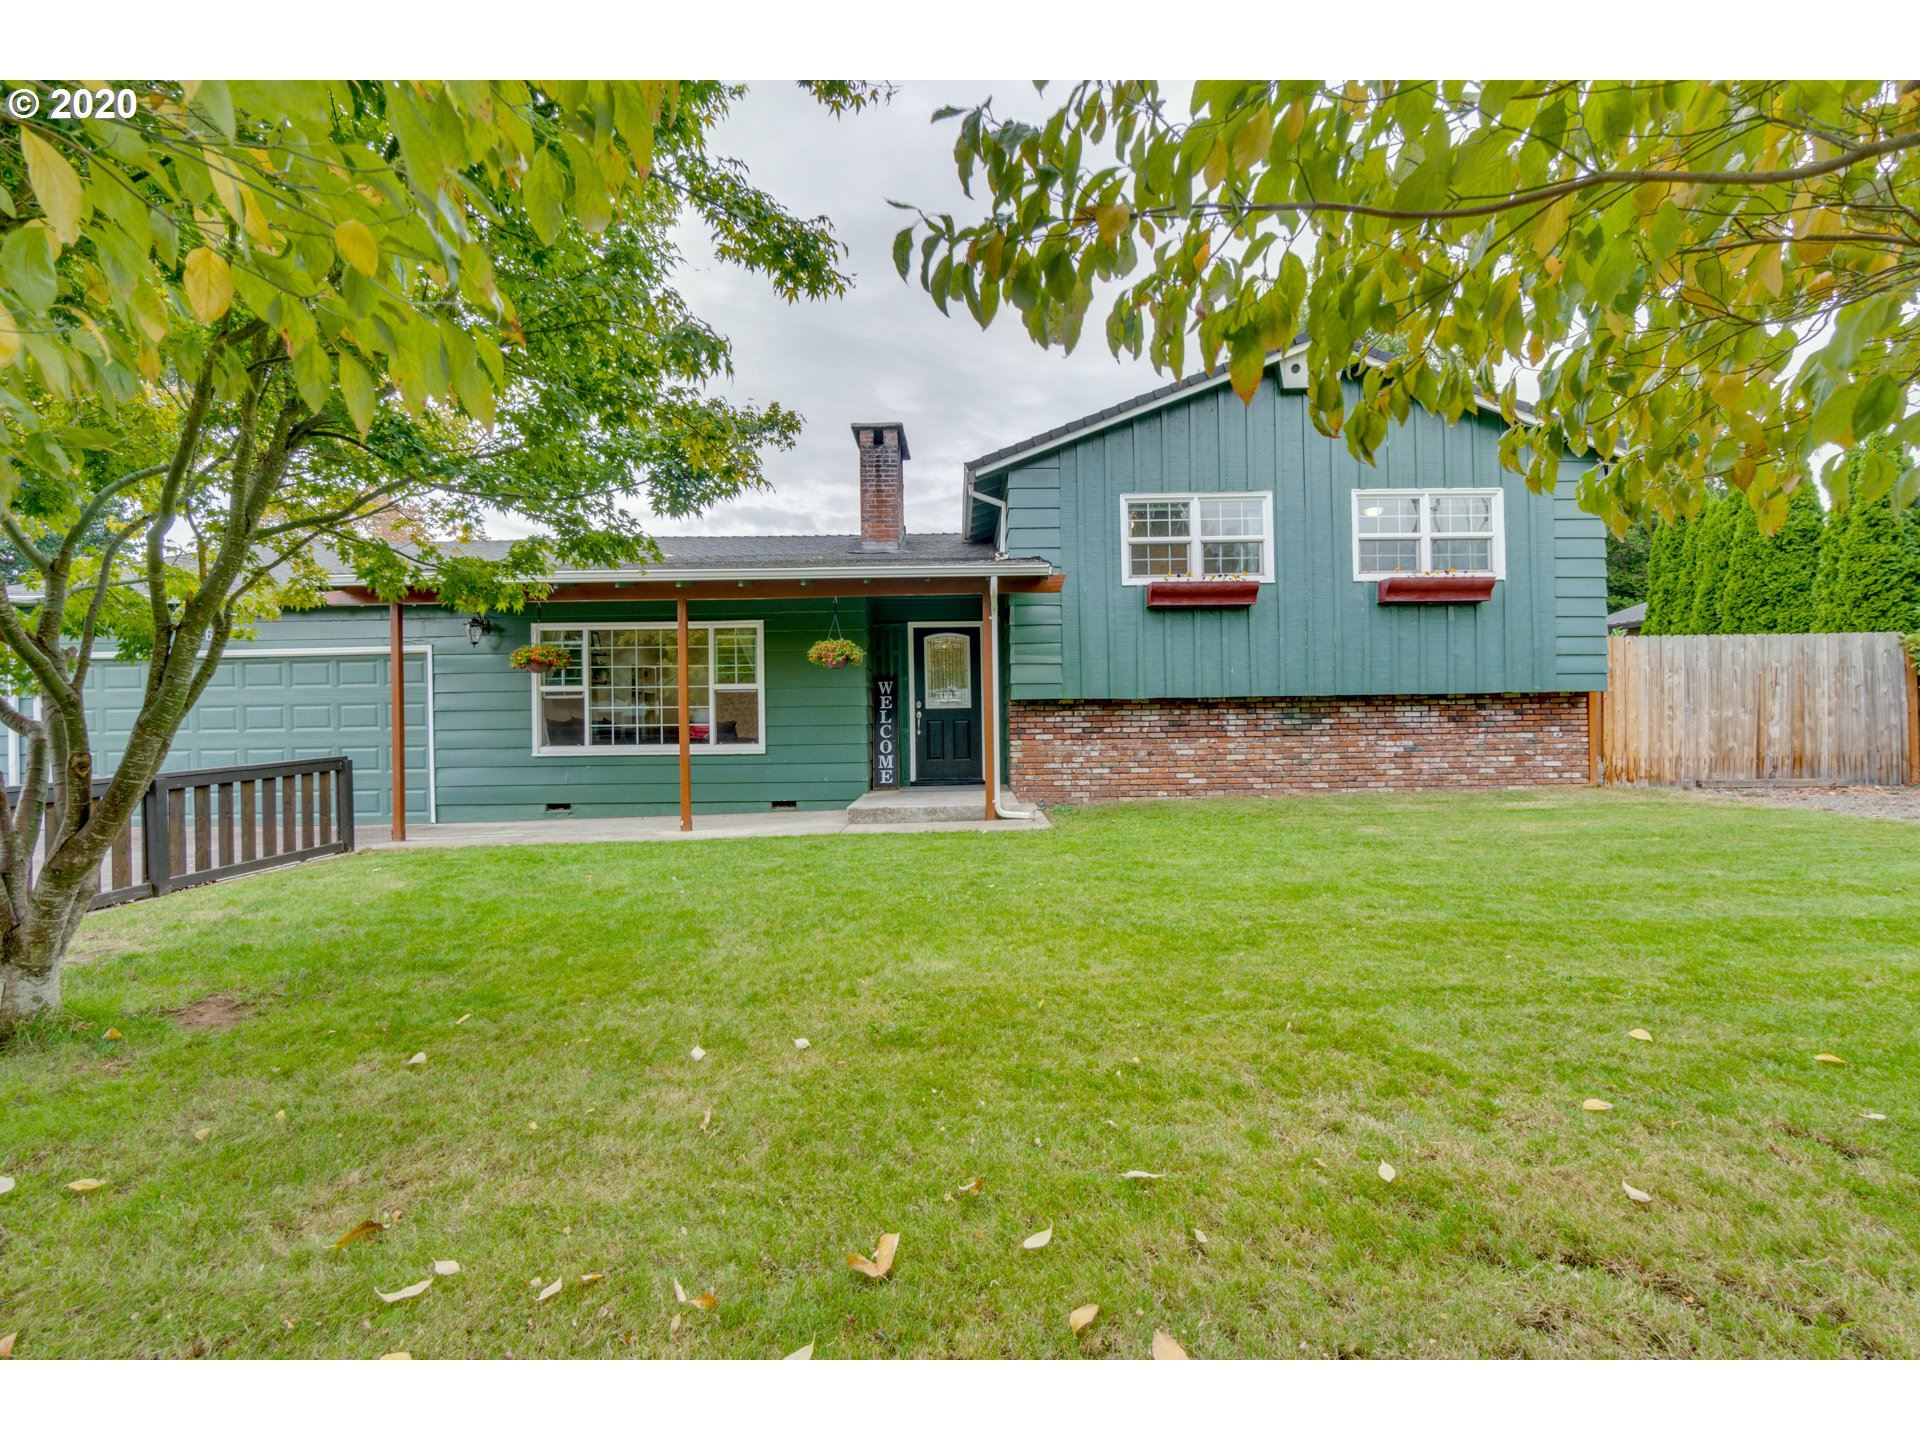 965 N IVY ST, Canby, OR 97013 - MLS#: 20190048